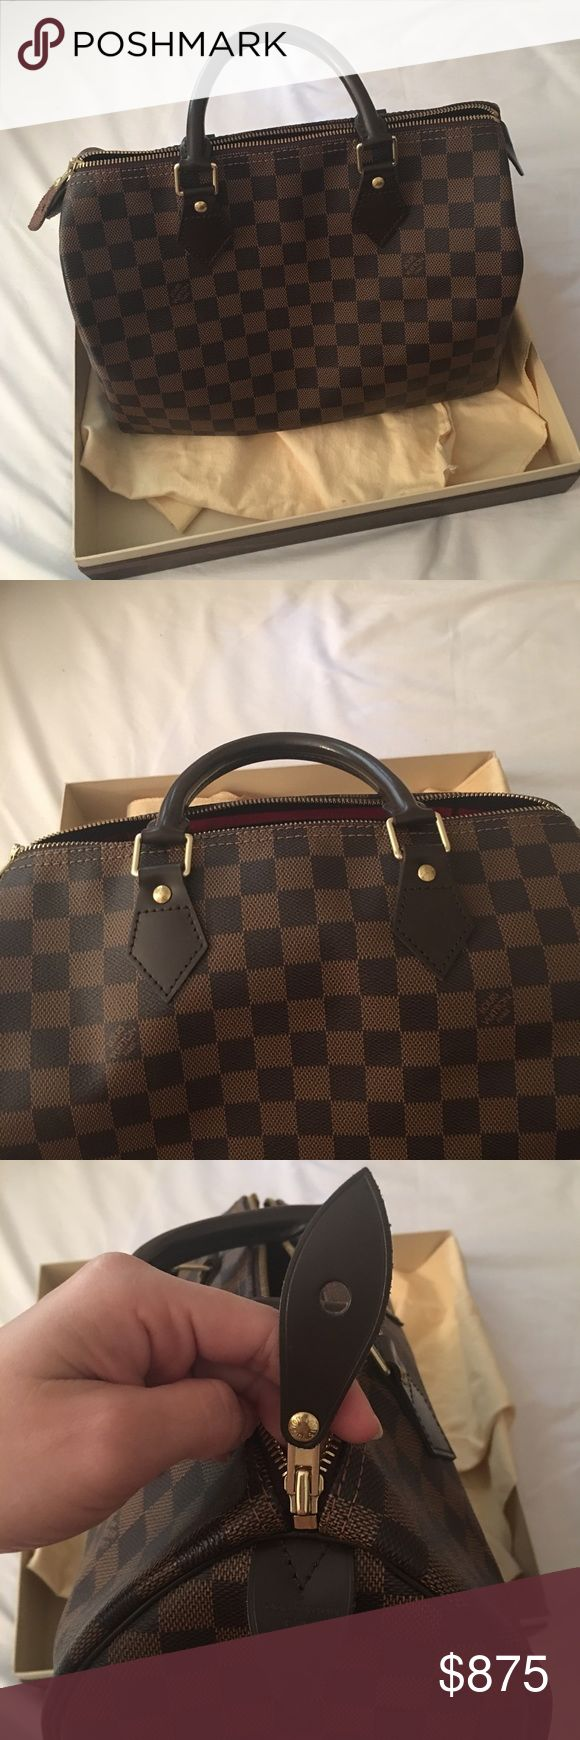 Louis Vuitton Speedy 30 Like new Louis Vuitton Damier Speedy 30. No tears or pulls. Piping is in very good condition. 1000% authentic. Comes with dustbag and box. Will go through Posh Concierge for authentication. This is a very pretty purse! Price is firm. I dont accept any offers. Posh takes 20% of the price. Louis Vuitton Bags Satchels